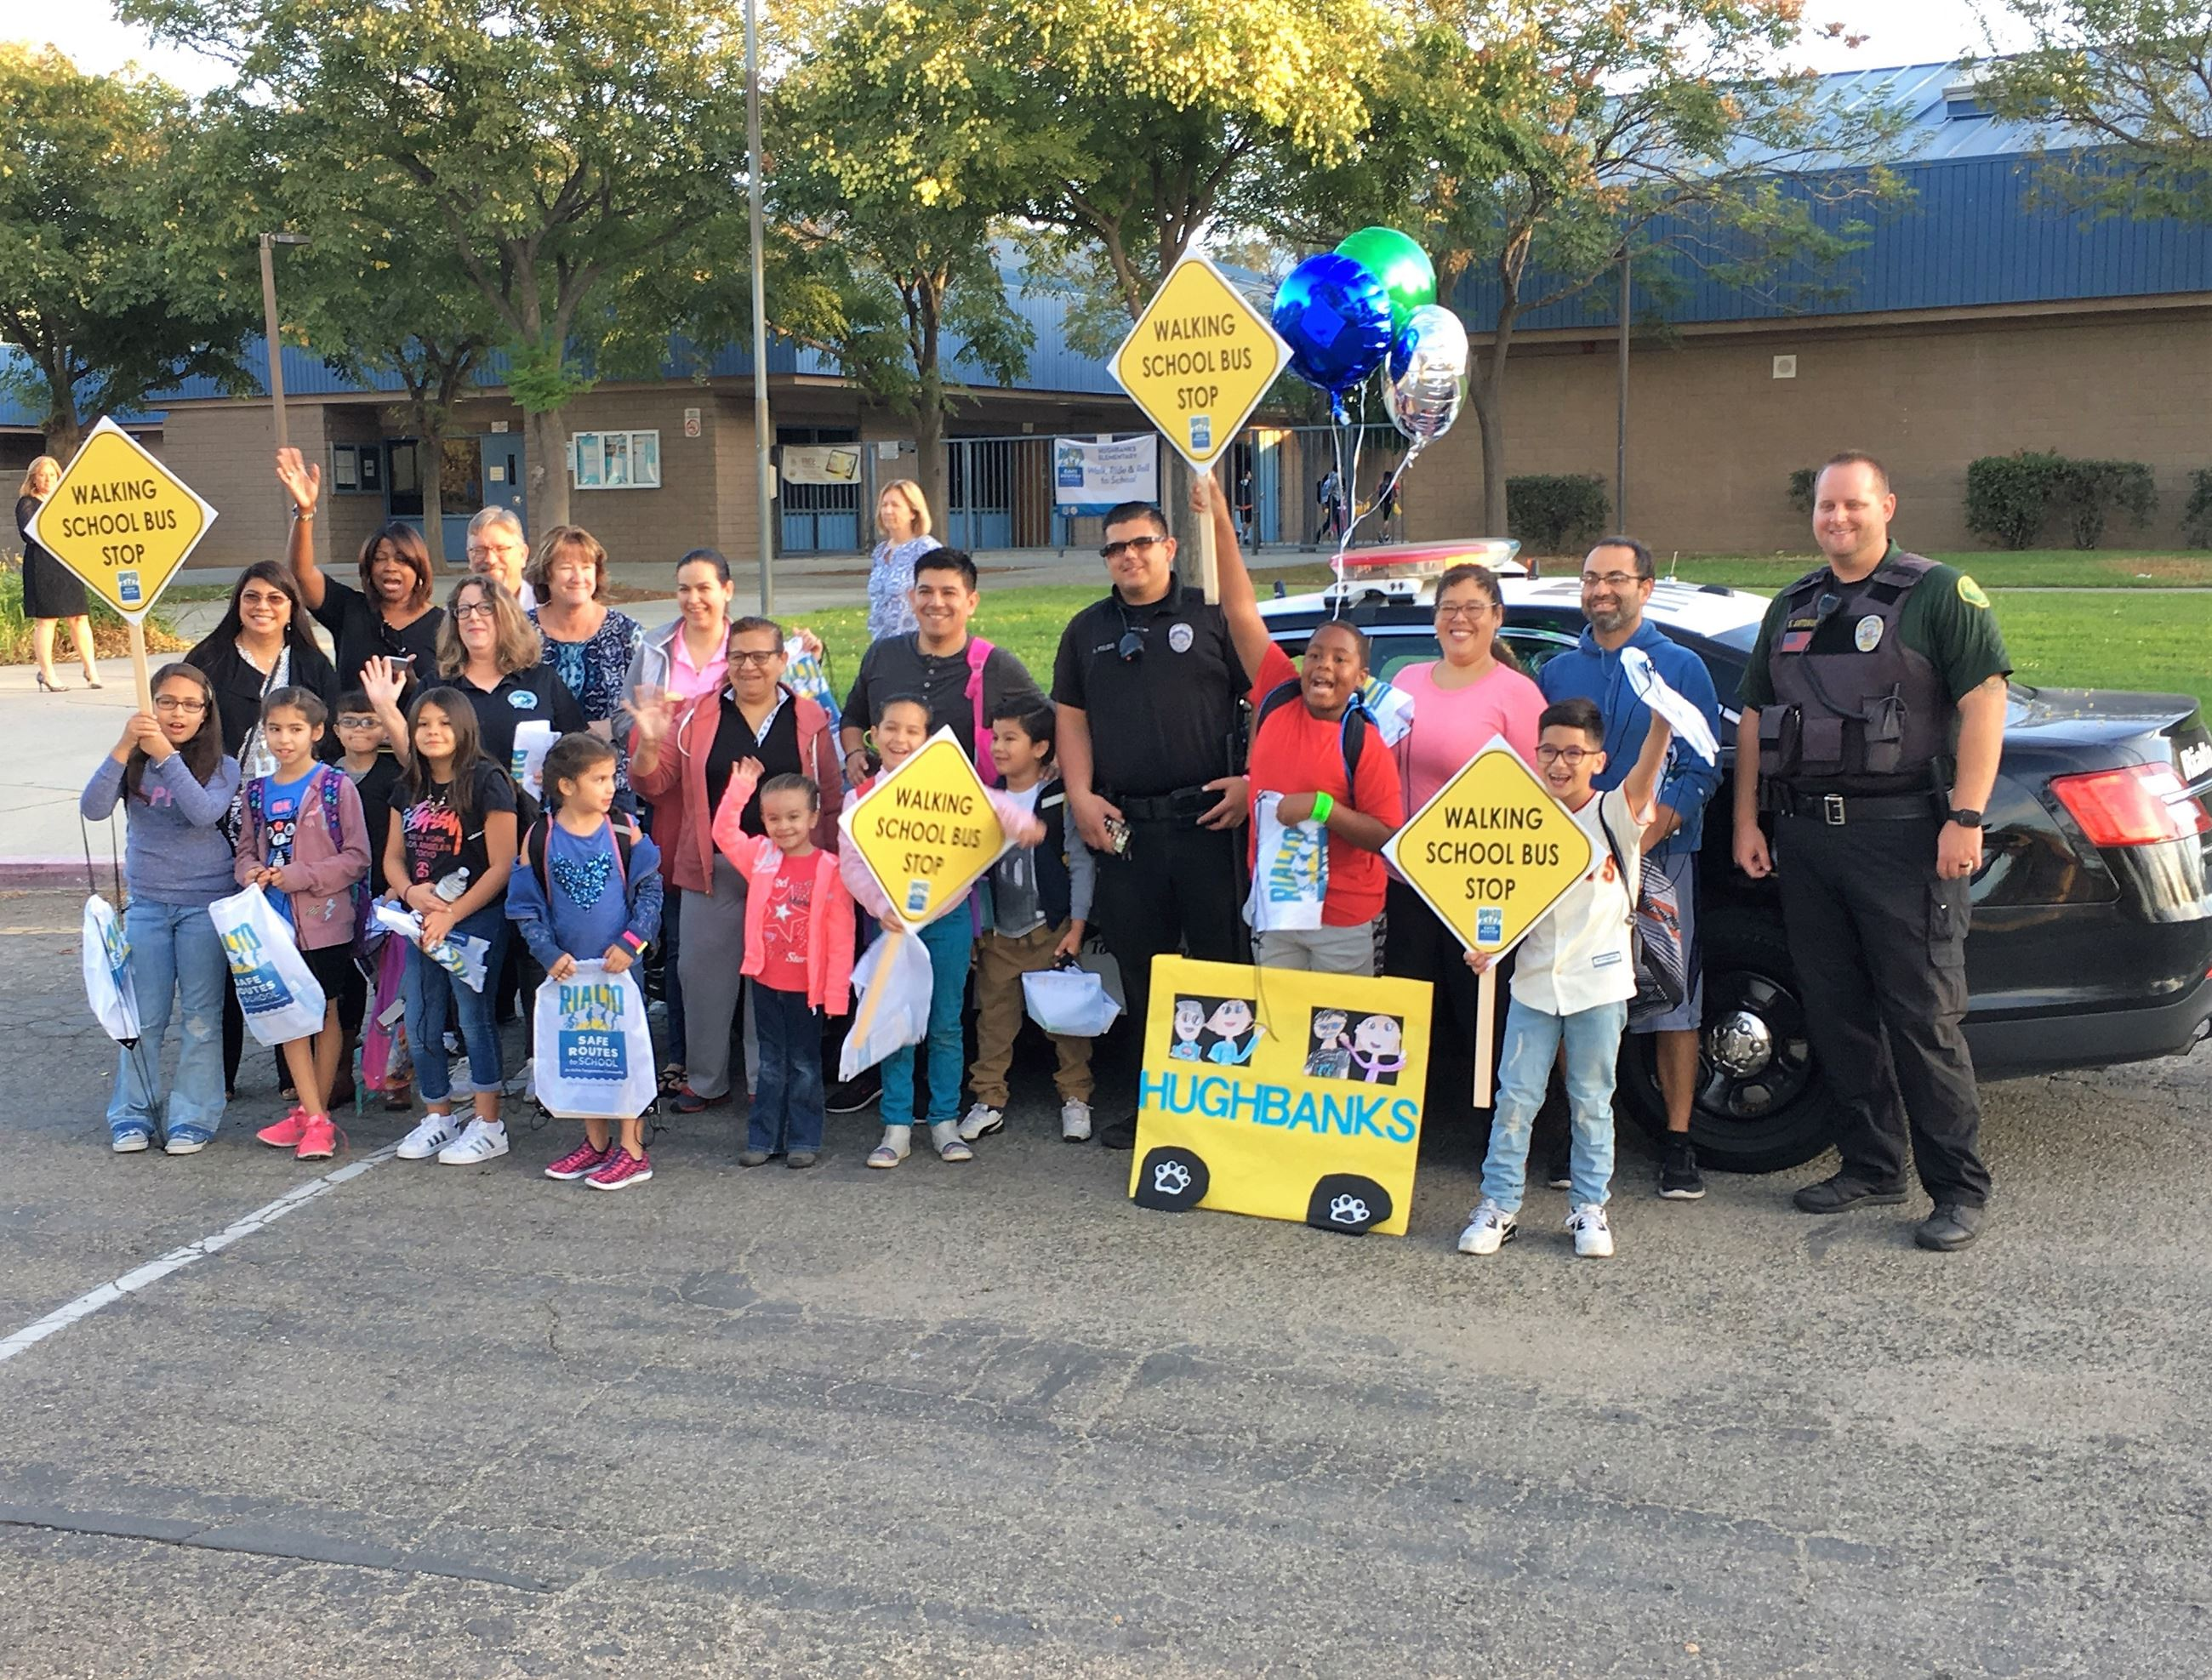 Children and Police Officers at Walking School Bus Event